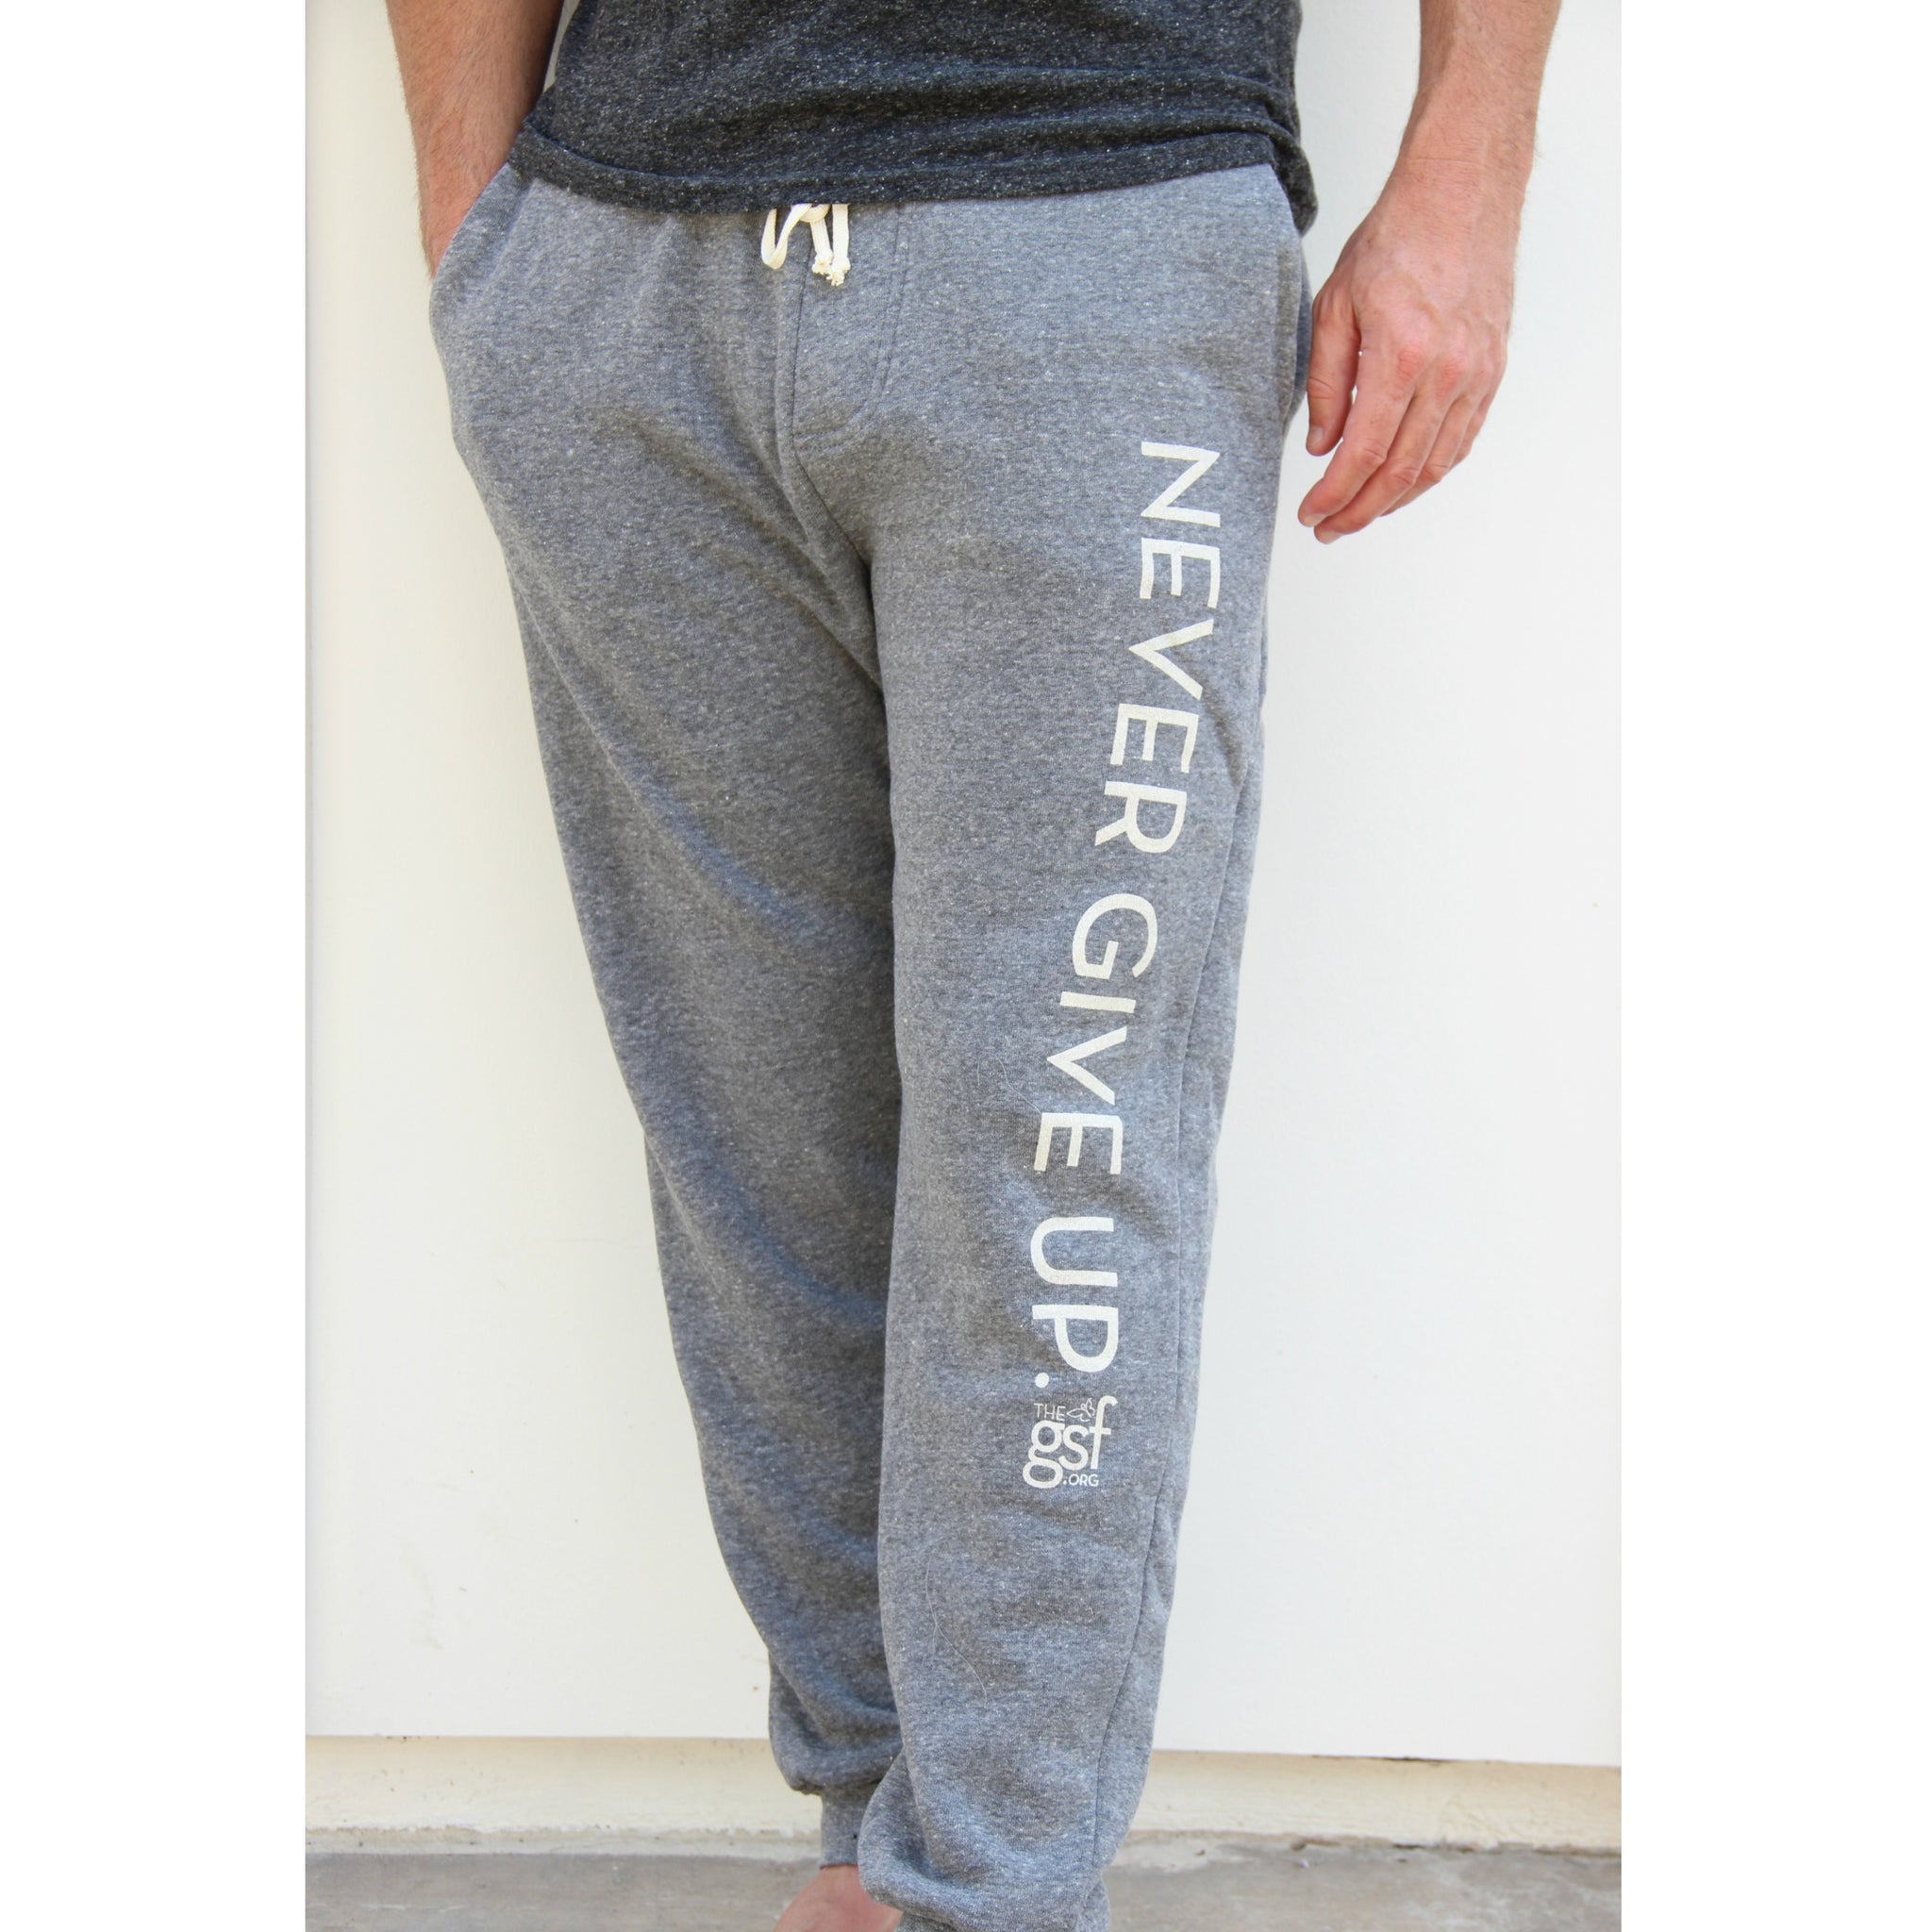 NEVER GIVE UP. SWEATPANTS